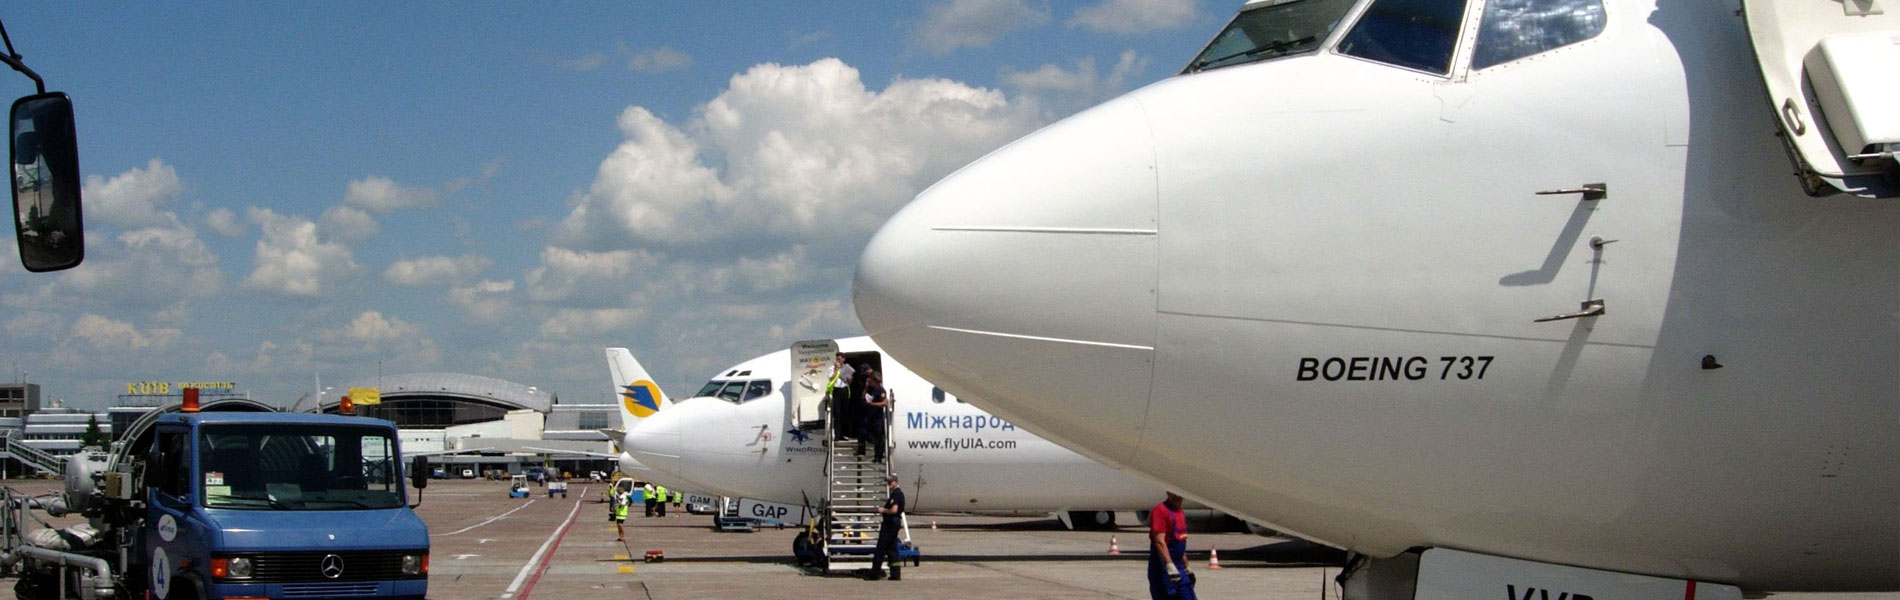 Air freight Services in Ireland